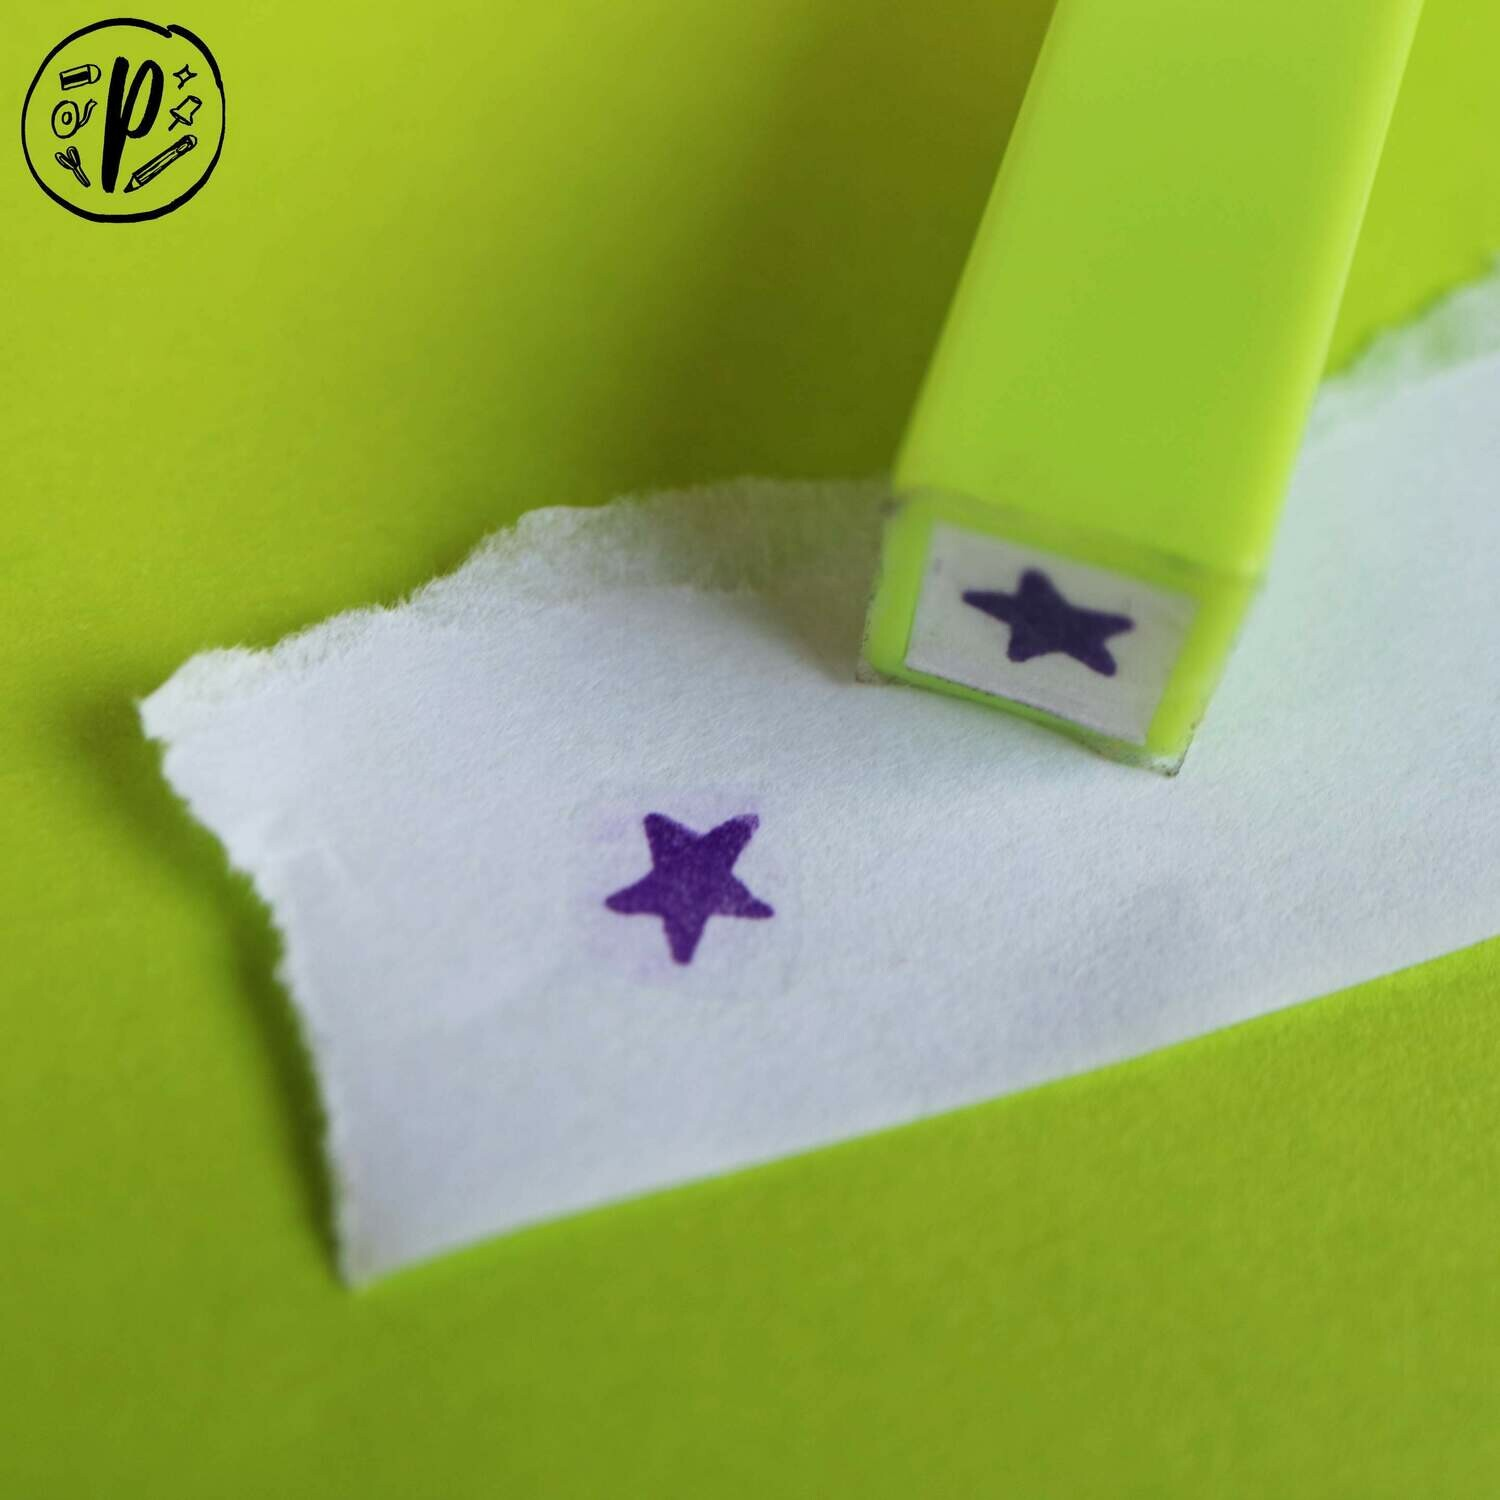 Planner Stamps // Digistamps x Paperworks Stationery: Star